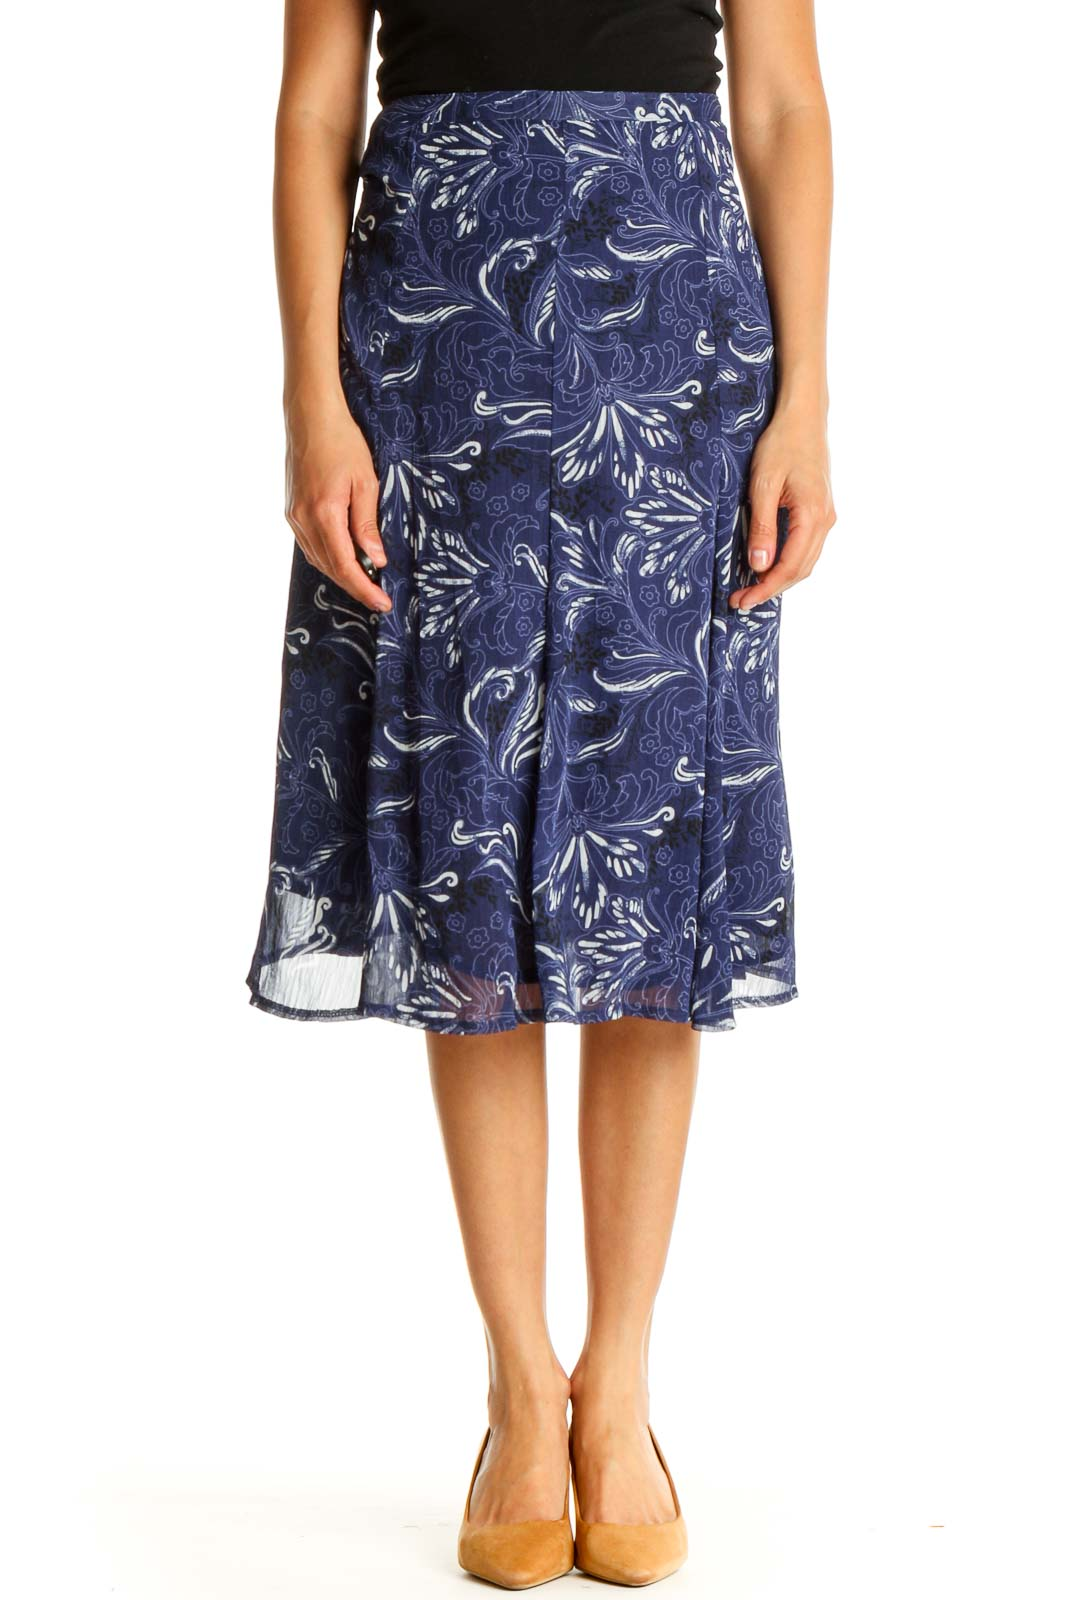 Blue Printed Casual A-Line Skirt Front